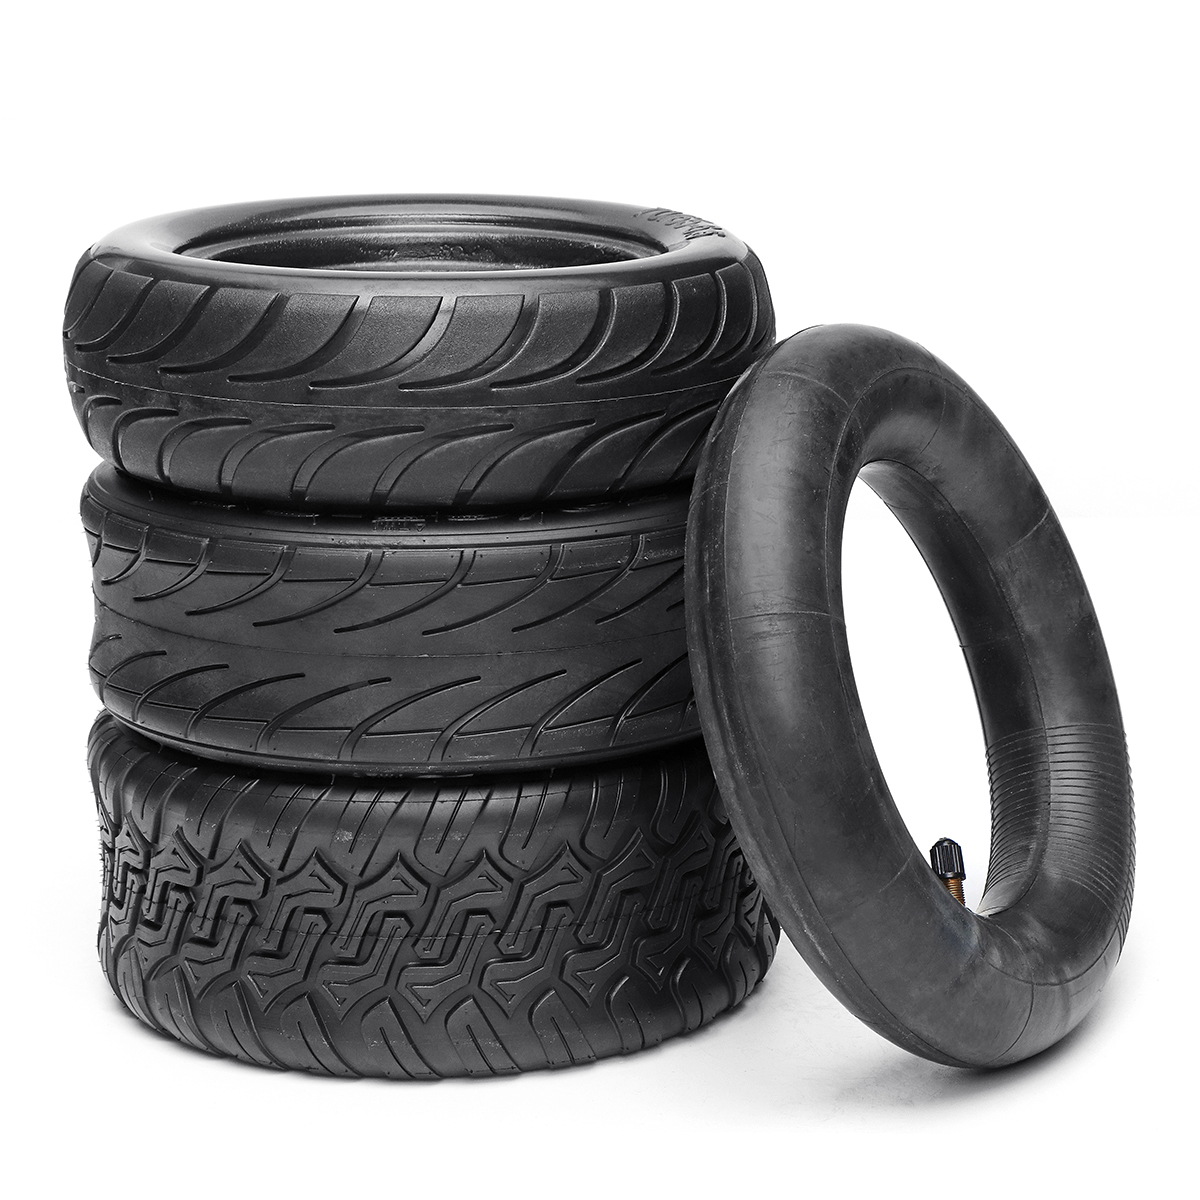 Scooter Off Road Tire Tubeless Tyre For Ninebot M